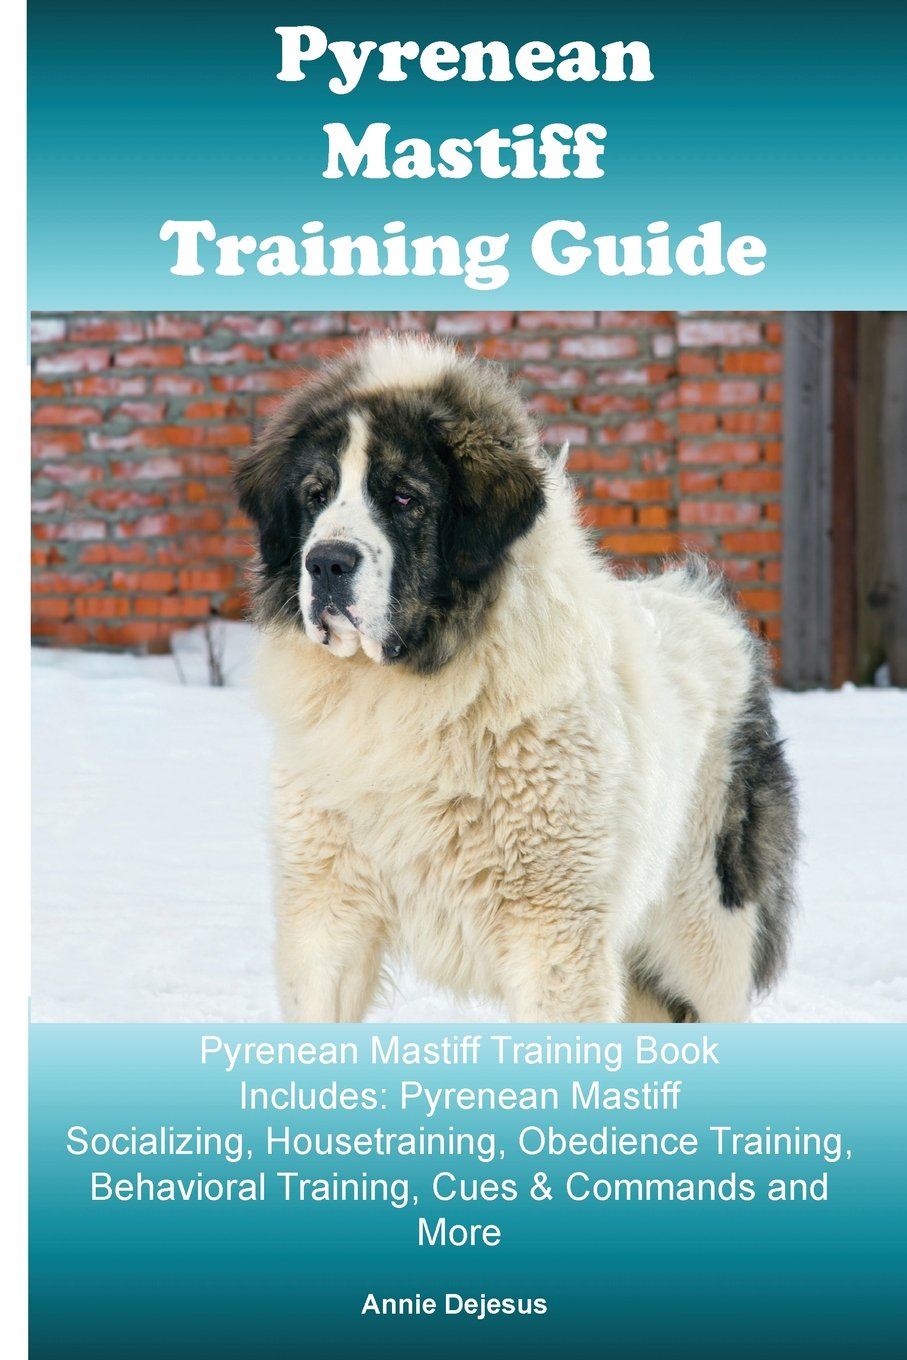 Download Pyrenean Mastiff Training Guide Pyrenean Mastiff Training Book Includes: Pyrenean Mastiff Socializing, Housetraining, Obedience Training, Behavioral Training, Cues & Commands and More ebook